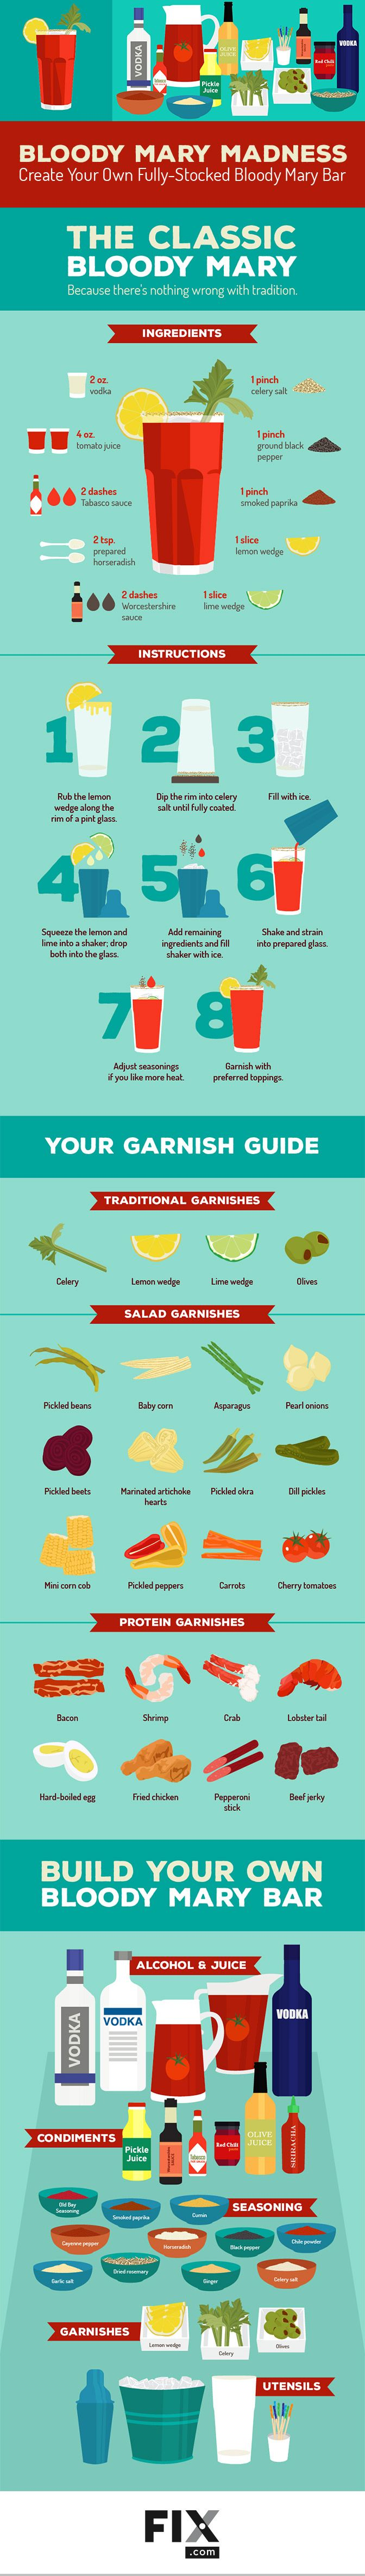 Up your Bloody Mary game with our guide to garnishes, tomato juice, and more!